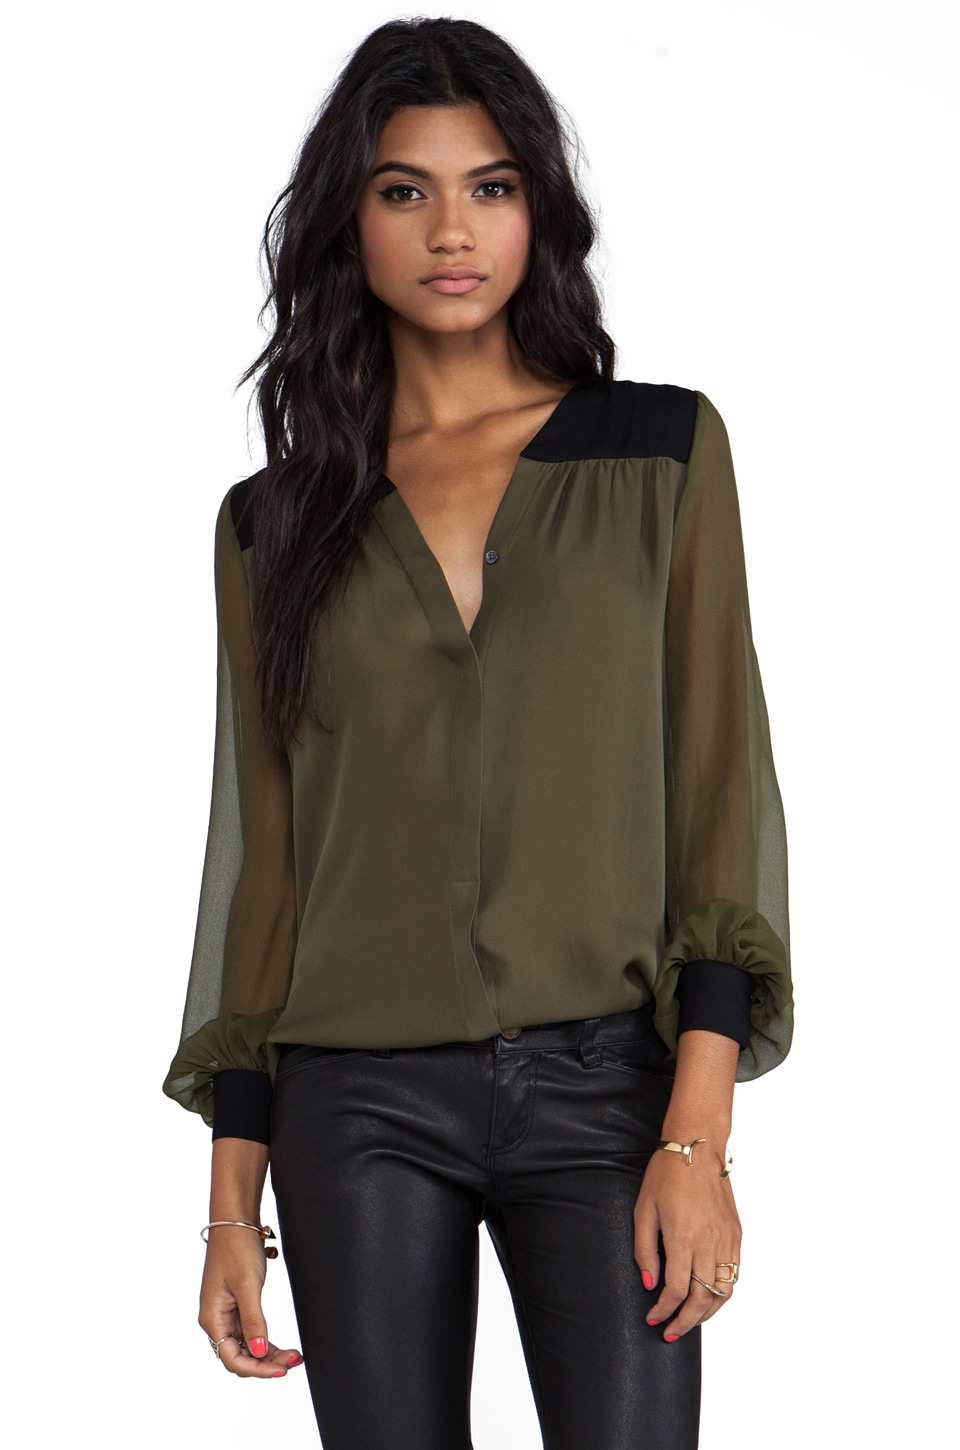 Haute Hippie Colorblock Blouse in Military & Black